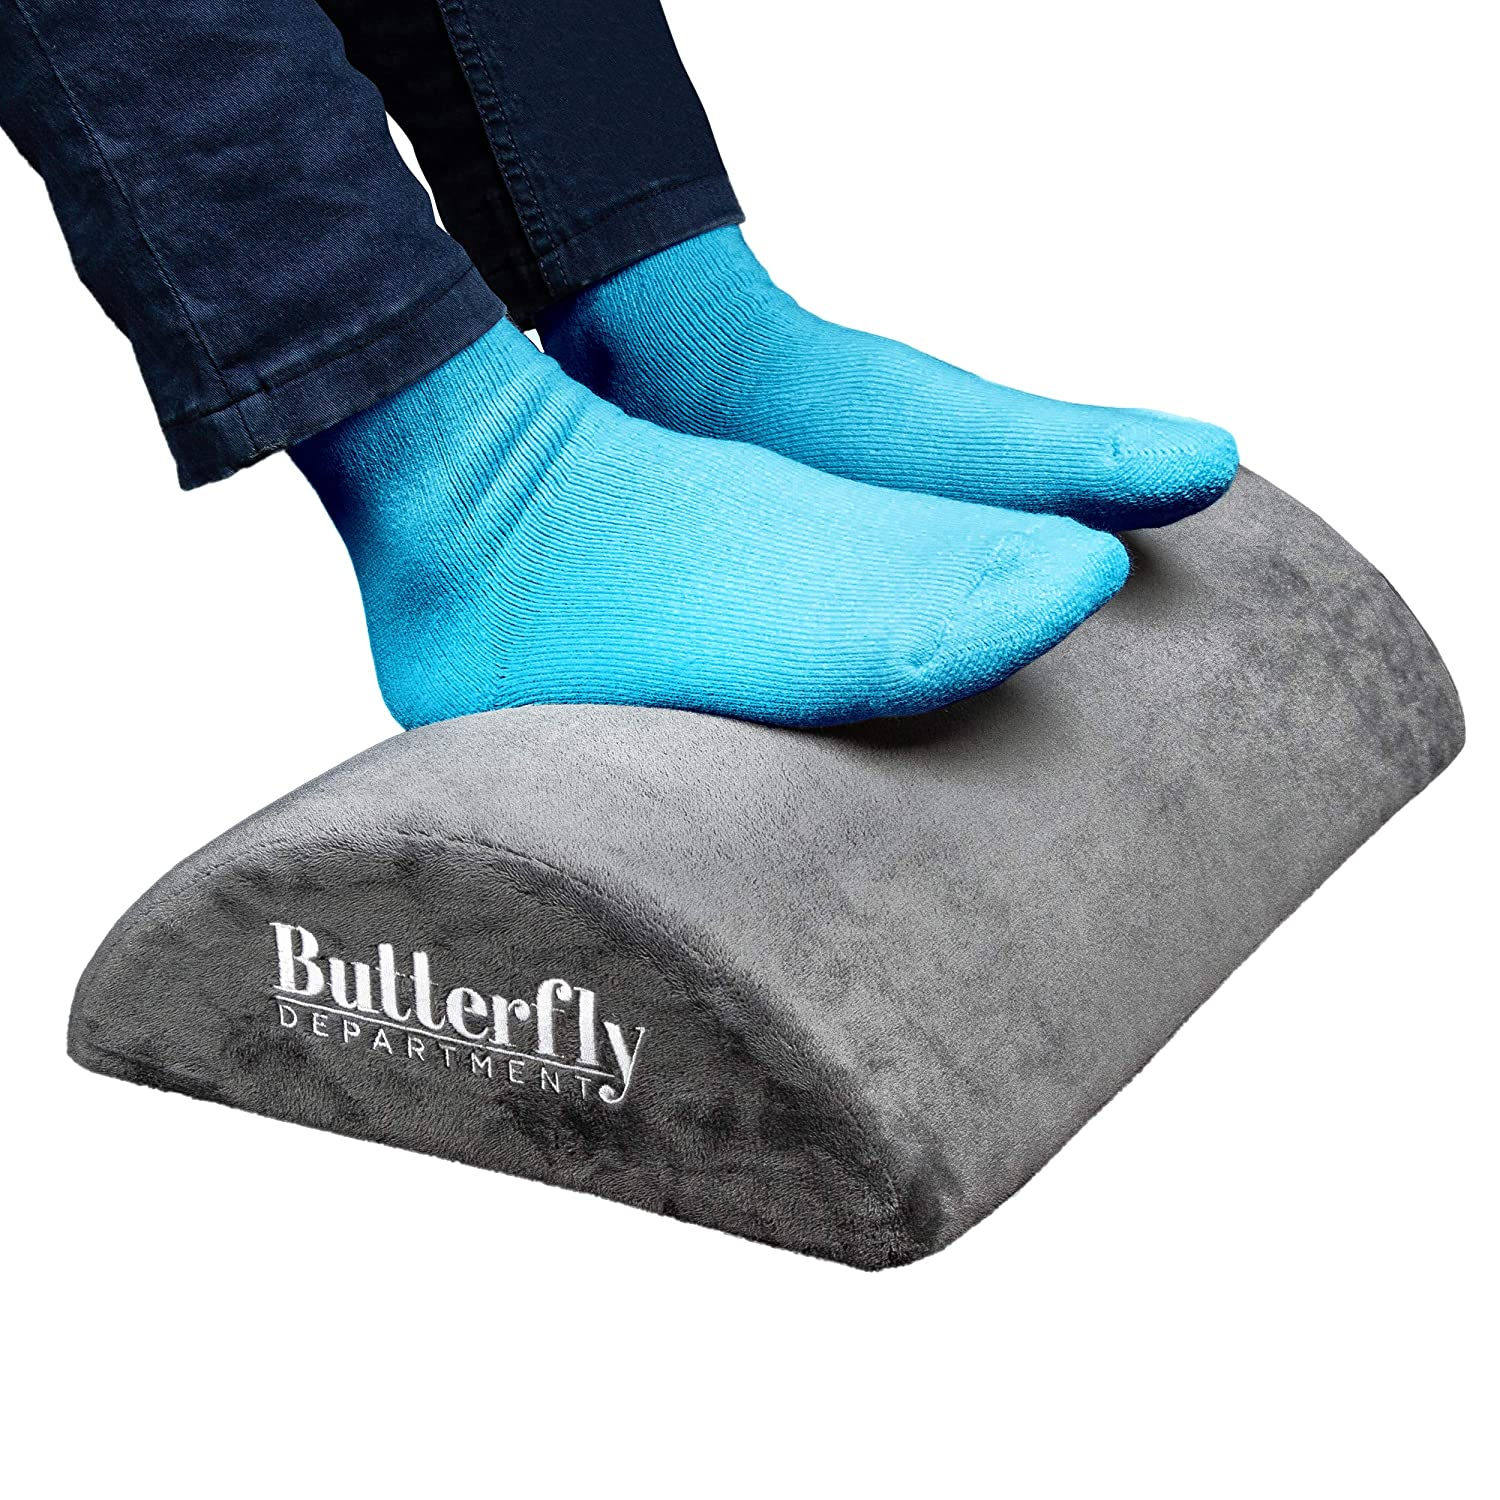 Foot Rest High Resilient Comfort Foam Ergonomic Foot Stool Non-Slip Bottom Soft Removable Cover Optimum Leg Clearance Footrest Cushion for Desk Foot Rest Under Desk Office and Home